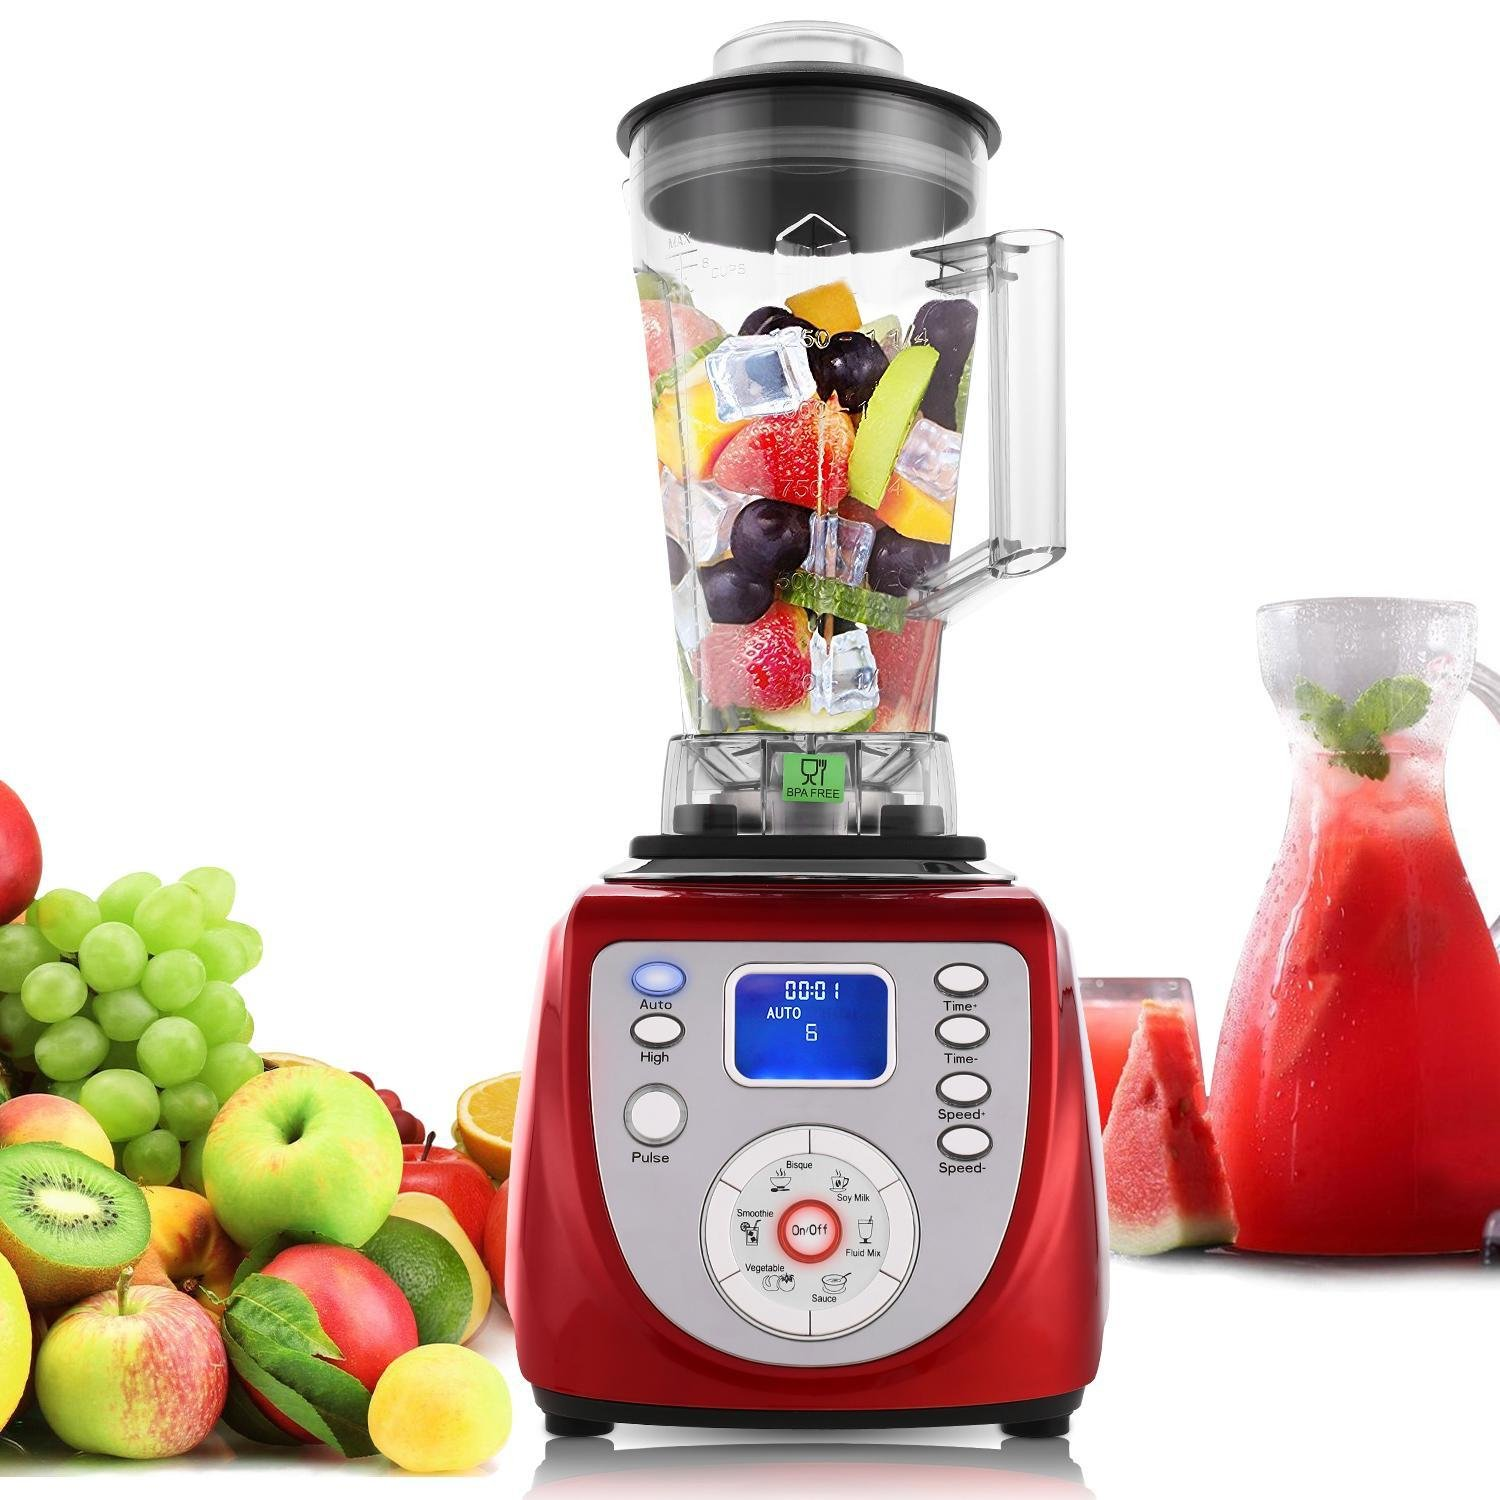 Utheing 2000W 2L High-powered Professional Blender with Mixer Jug Kitchen System